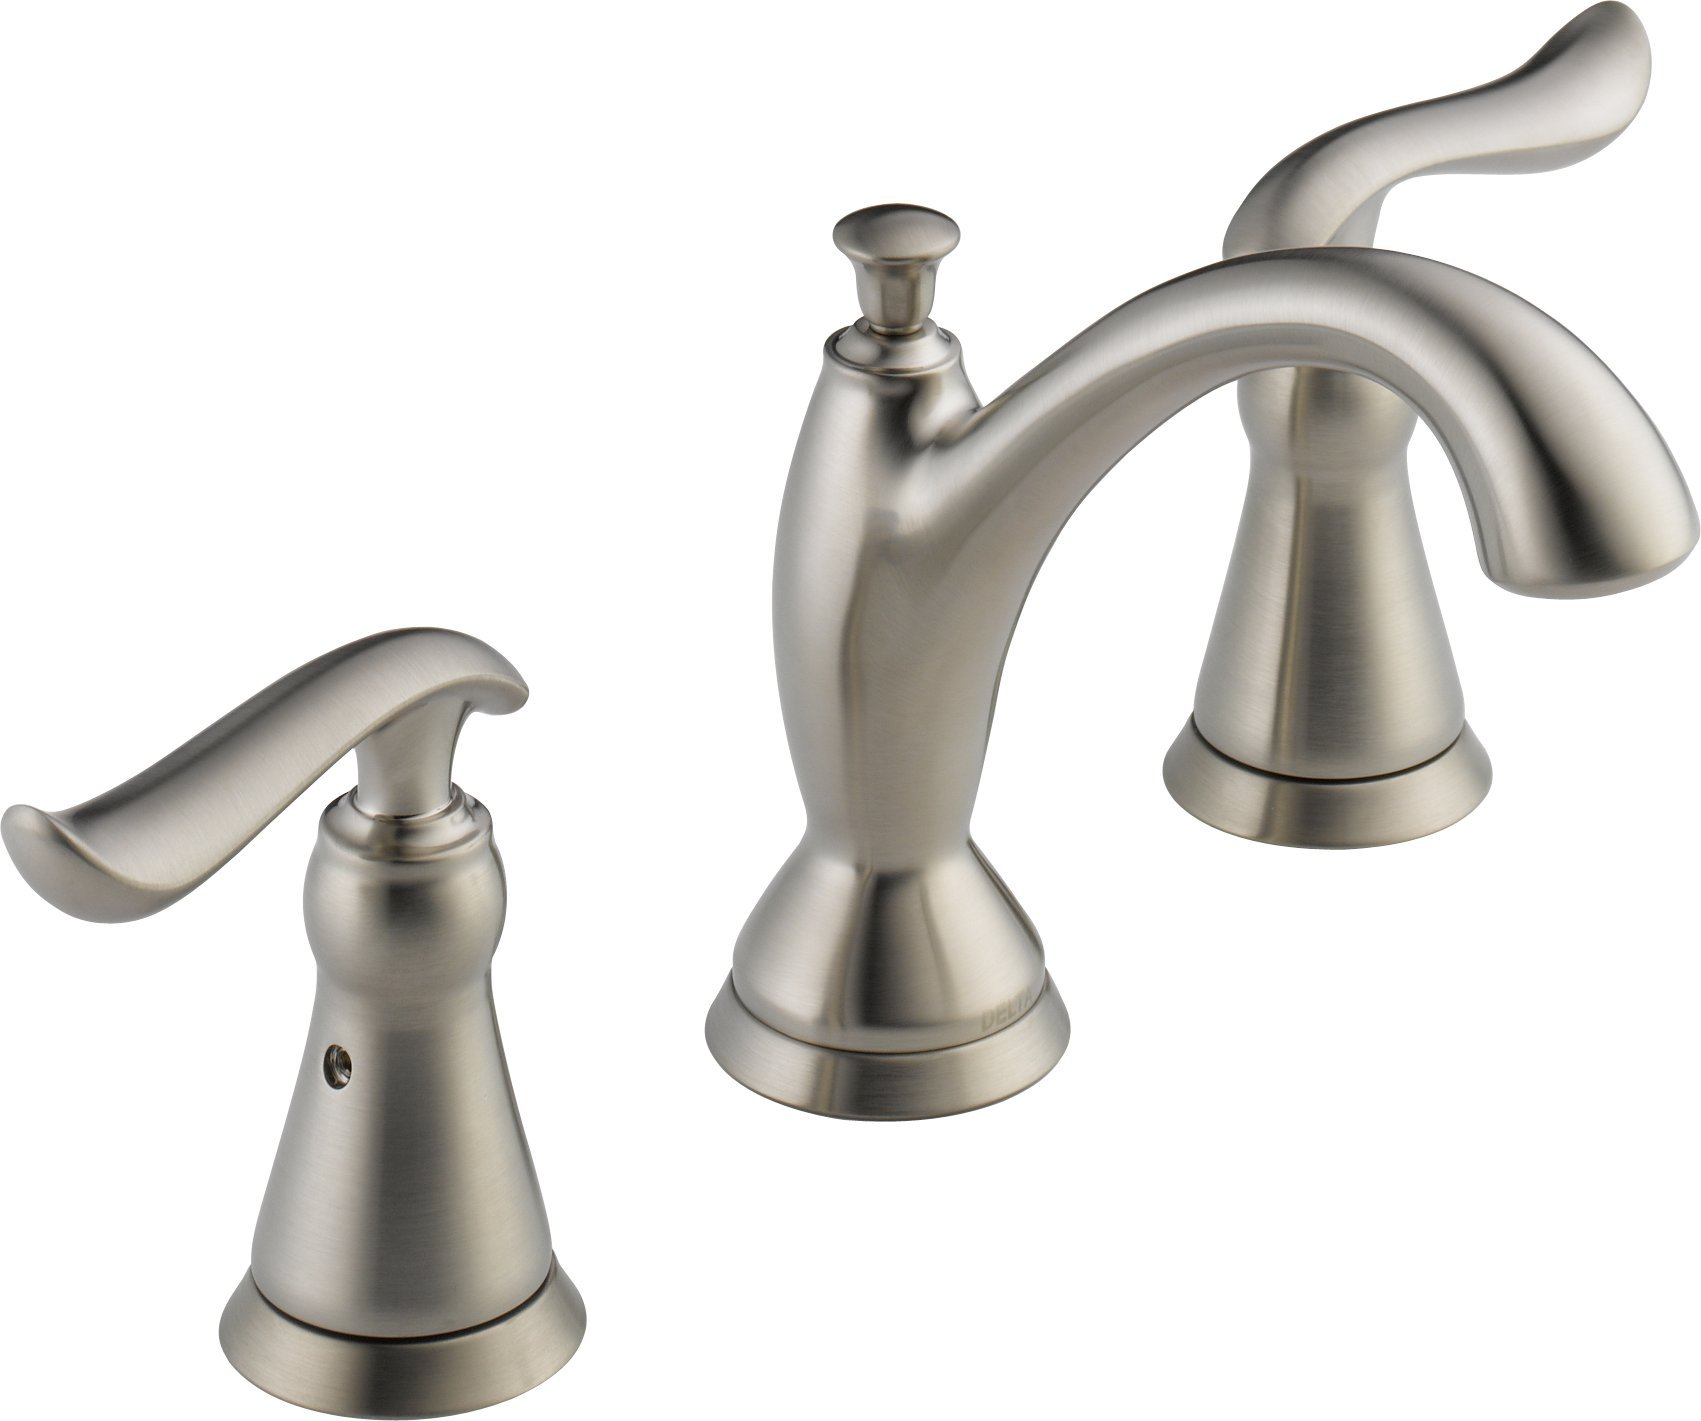 Delta 3594-SSMPU-DST Linden 2-Handle Widespread Bathroom Faucet with Diamond Seal Technology and Metal Drain Assembly, Stainless